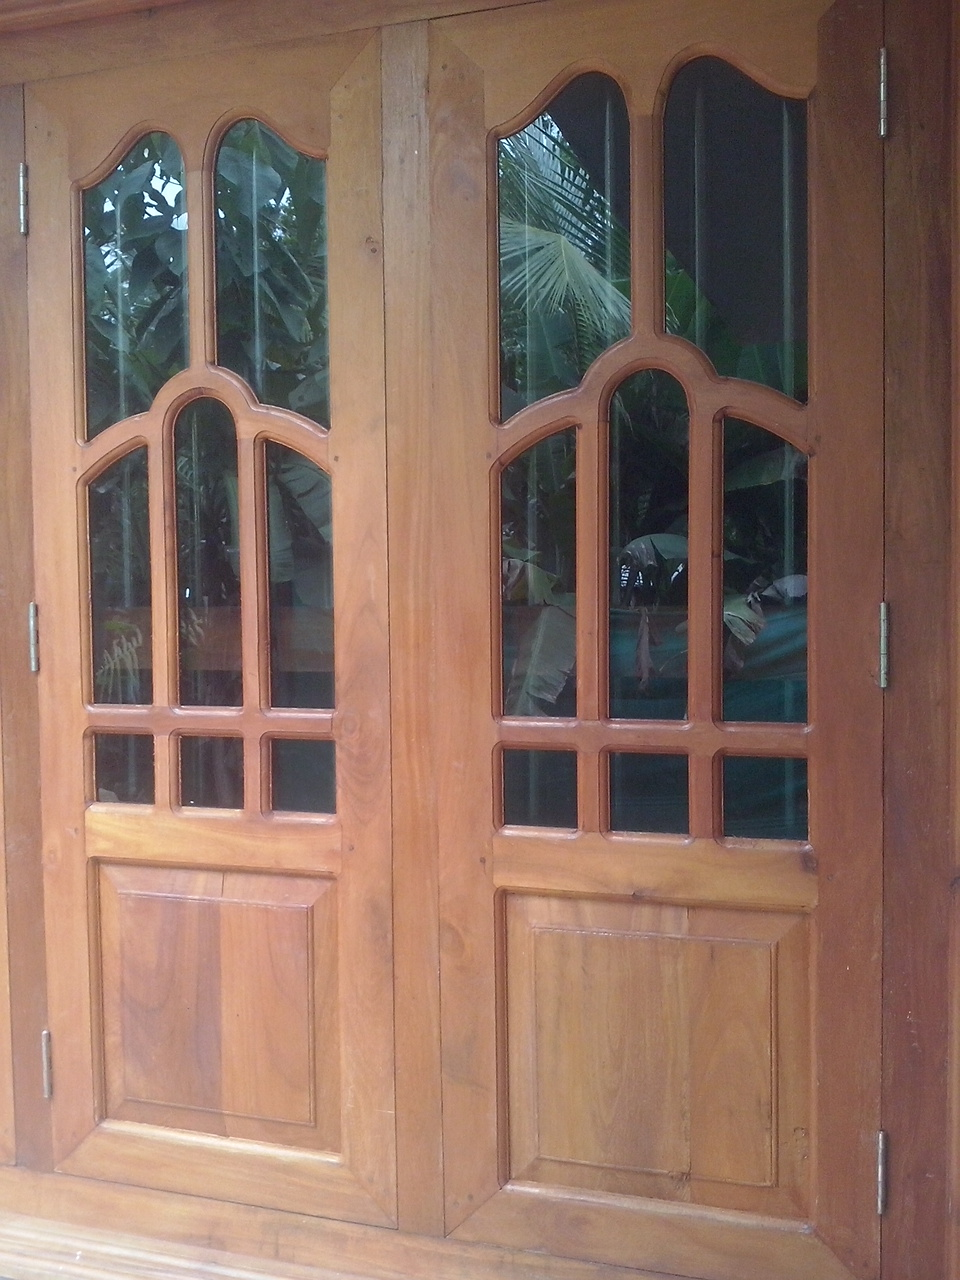 Car Door Window Replacement Cost >> BAVAS WOOD WORKS: Kerala Style wooden window door designs